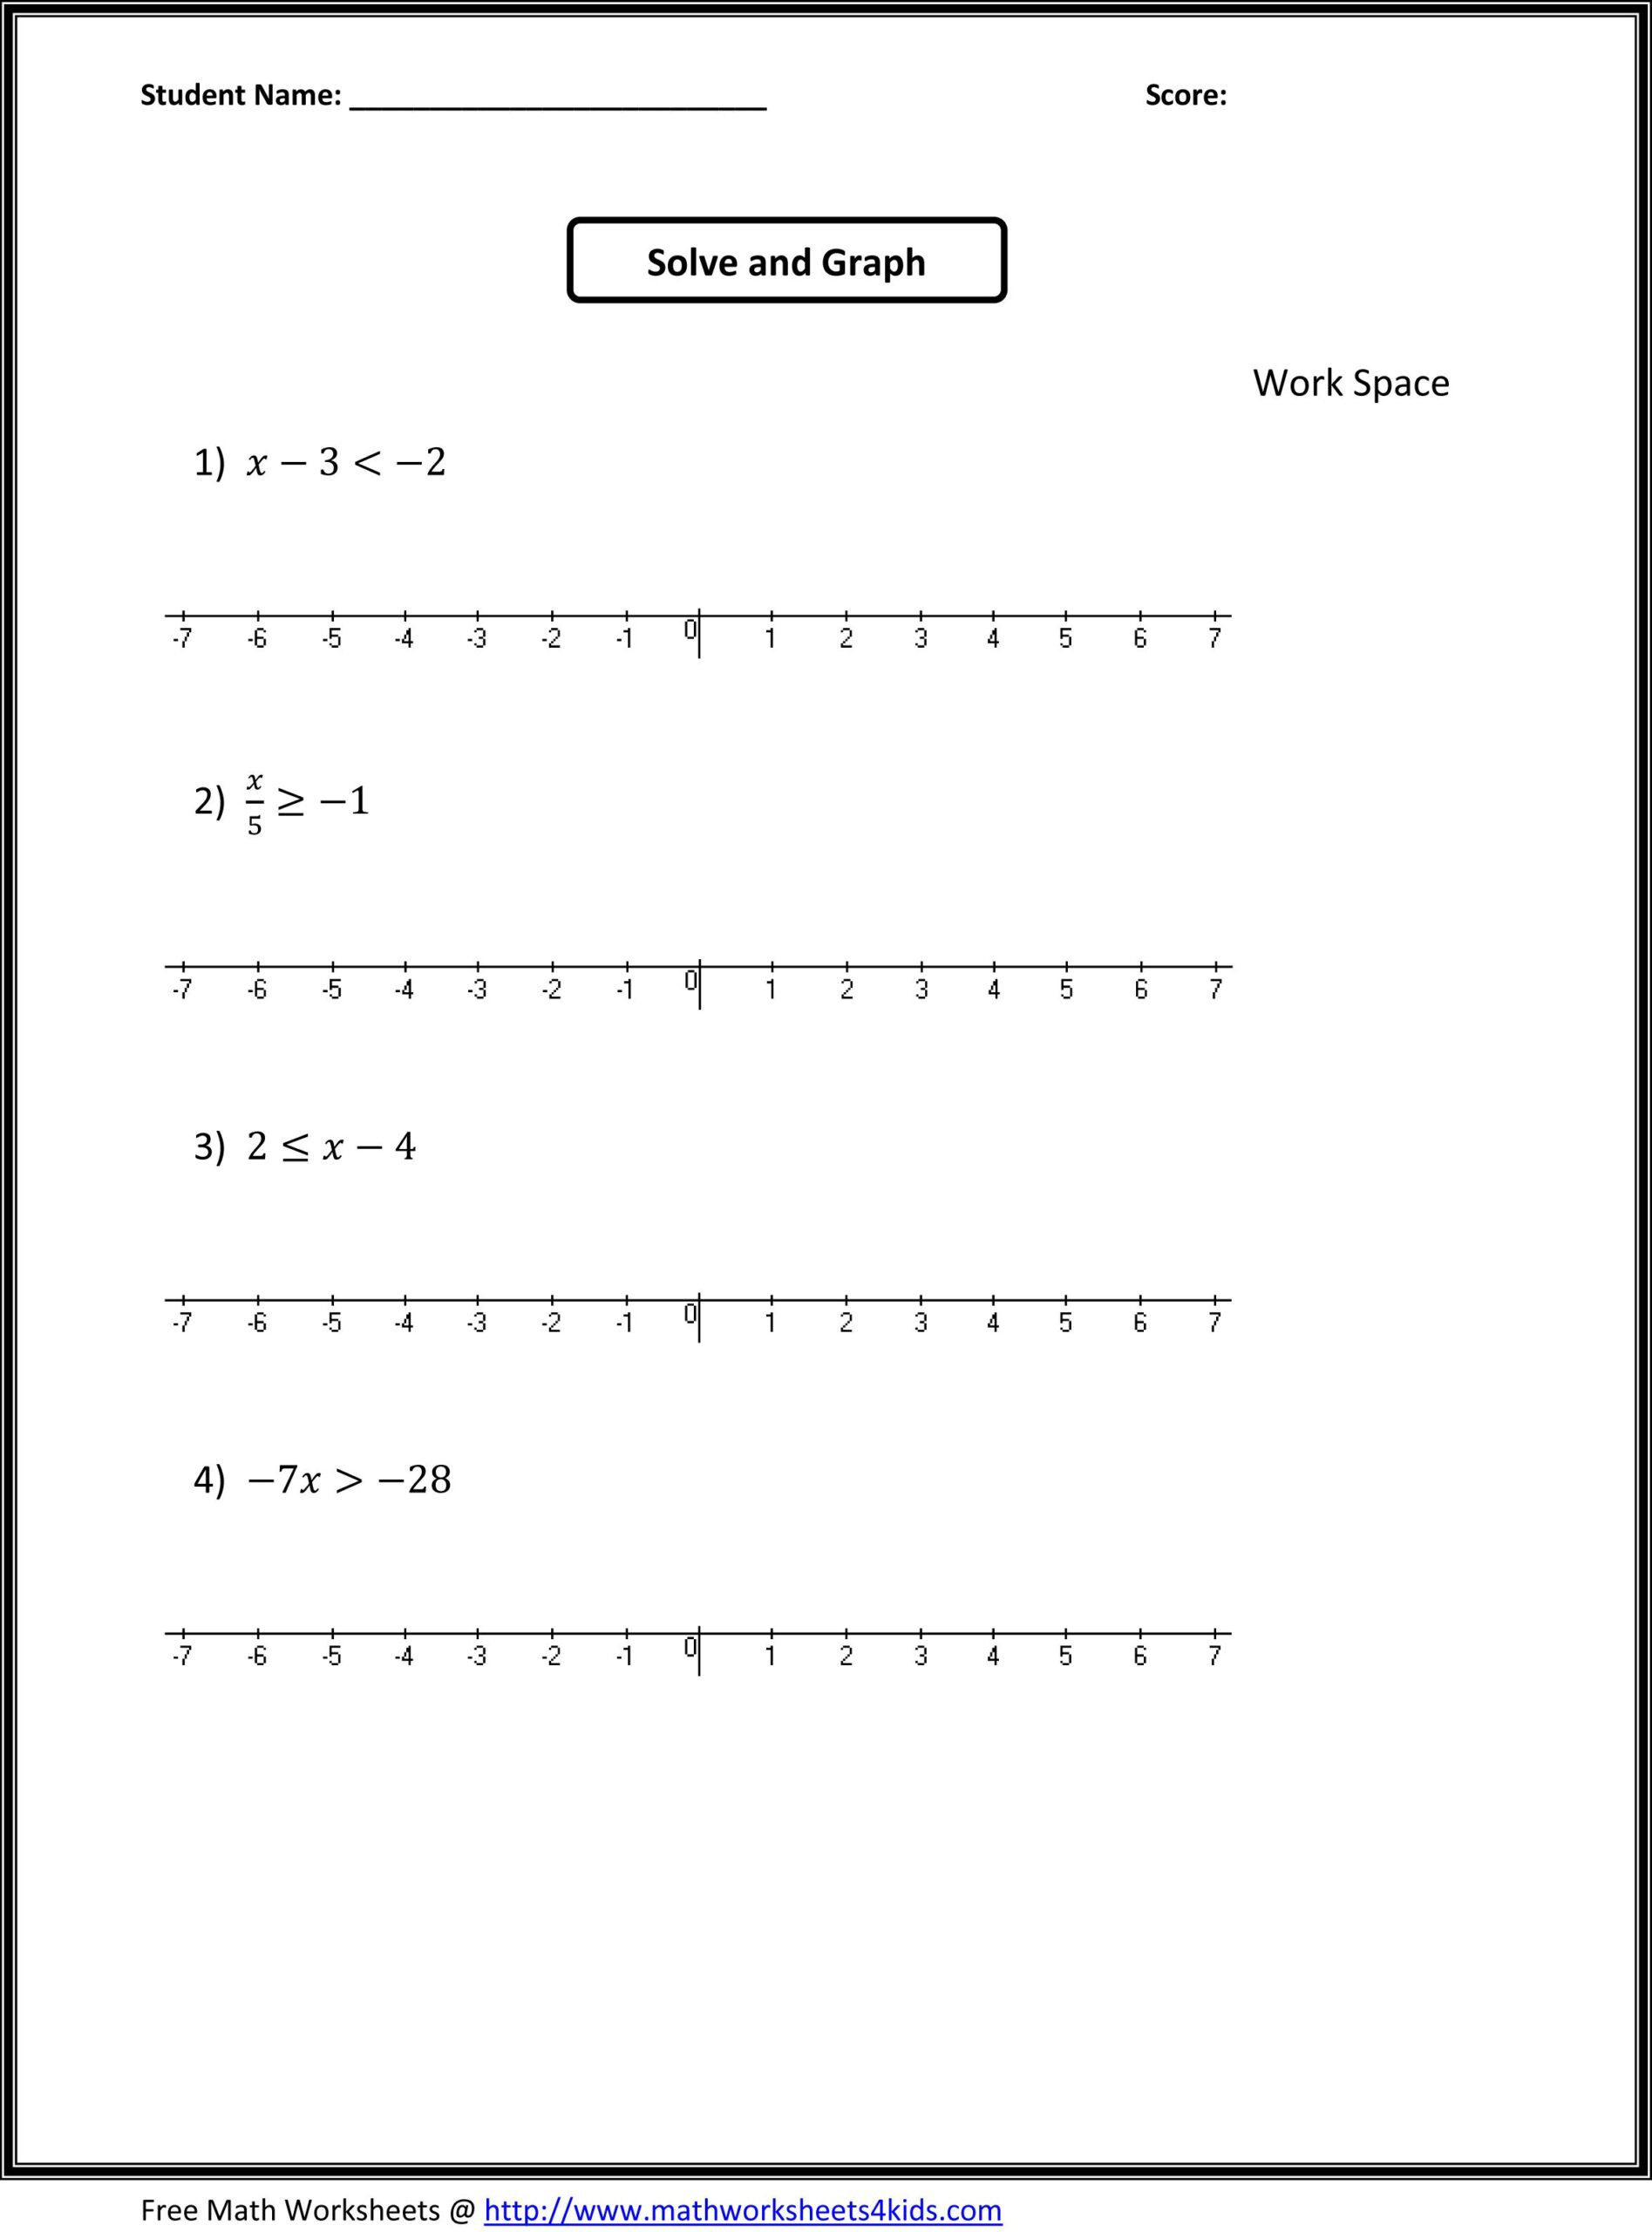 Coordinate Plane Worksheet 5th Grade Fun Worksheets for Elementary Students Coordinate Plane